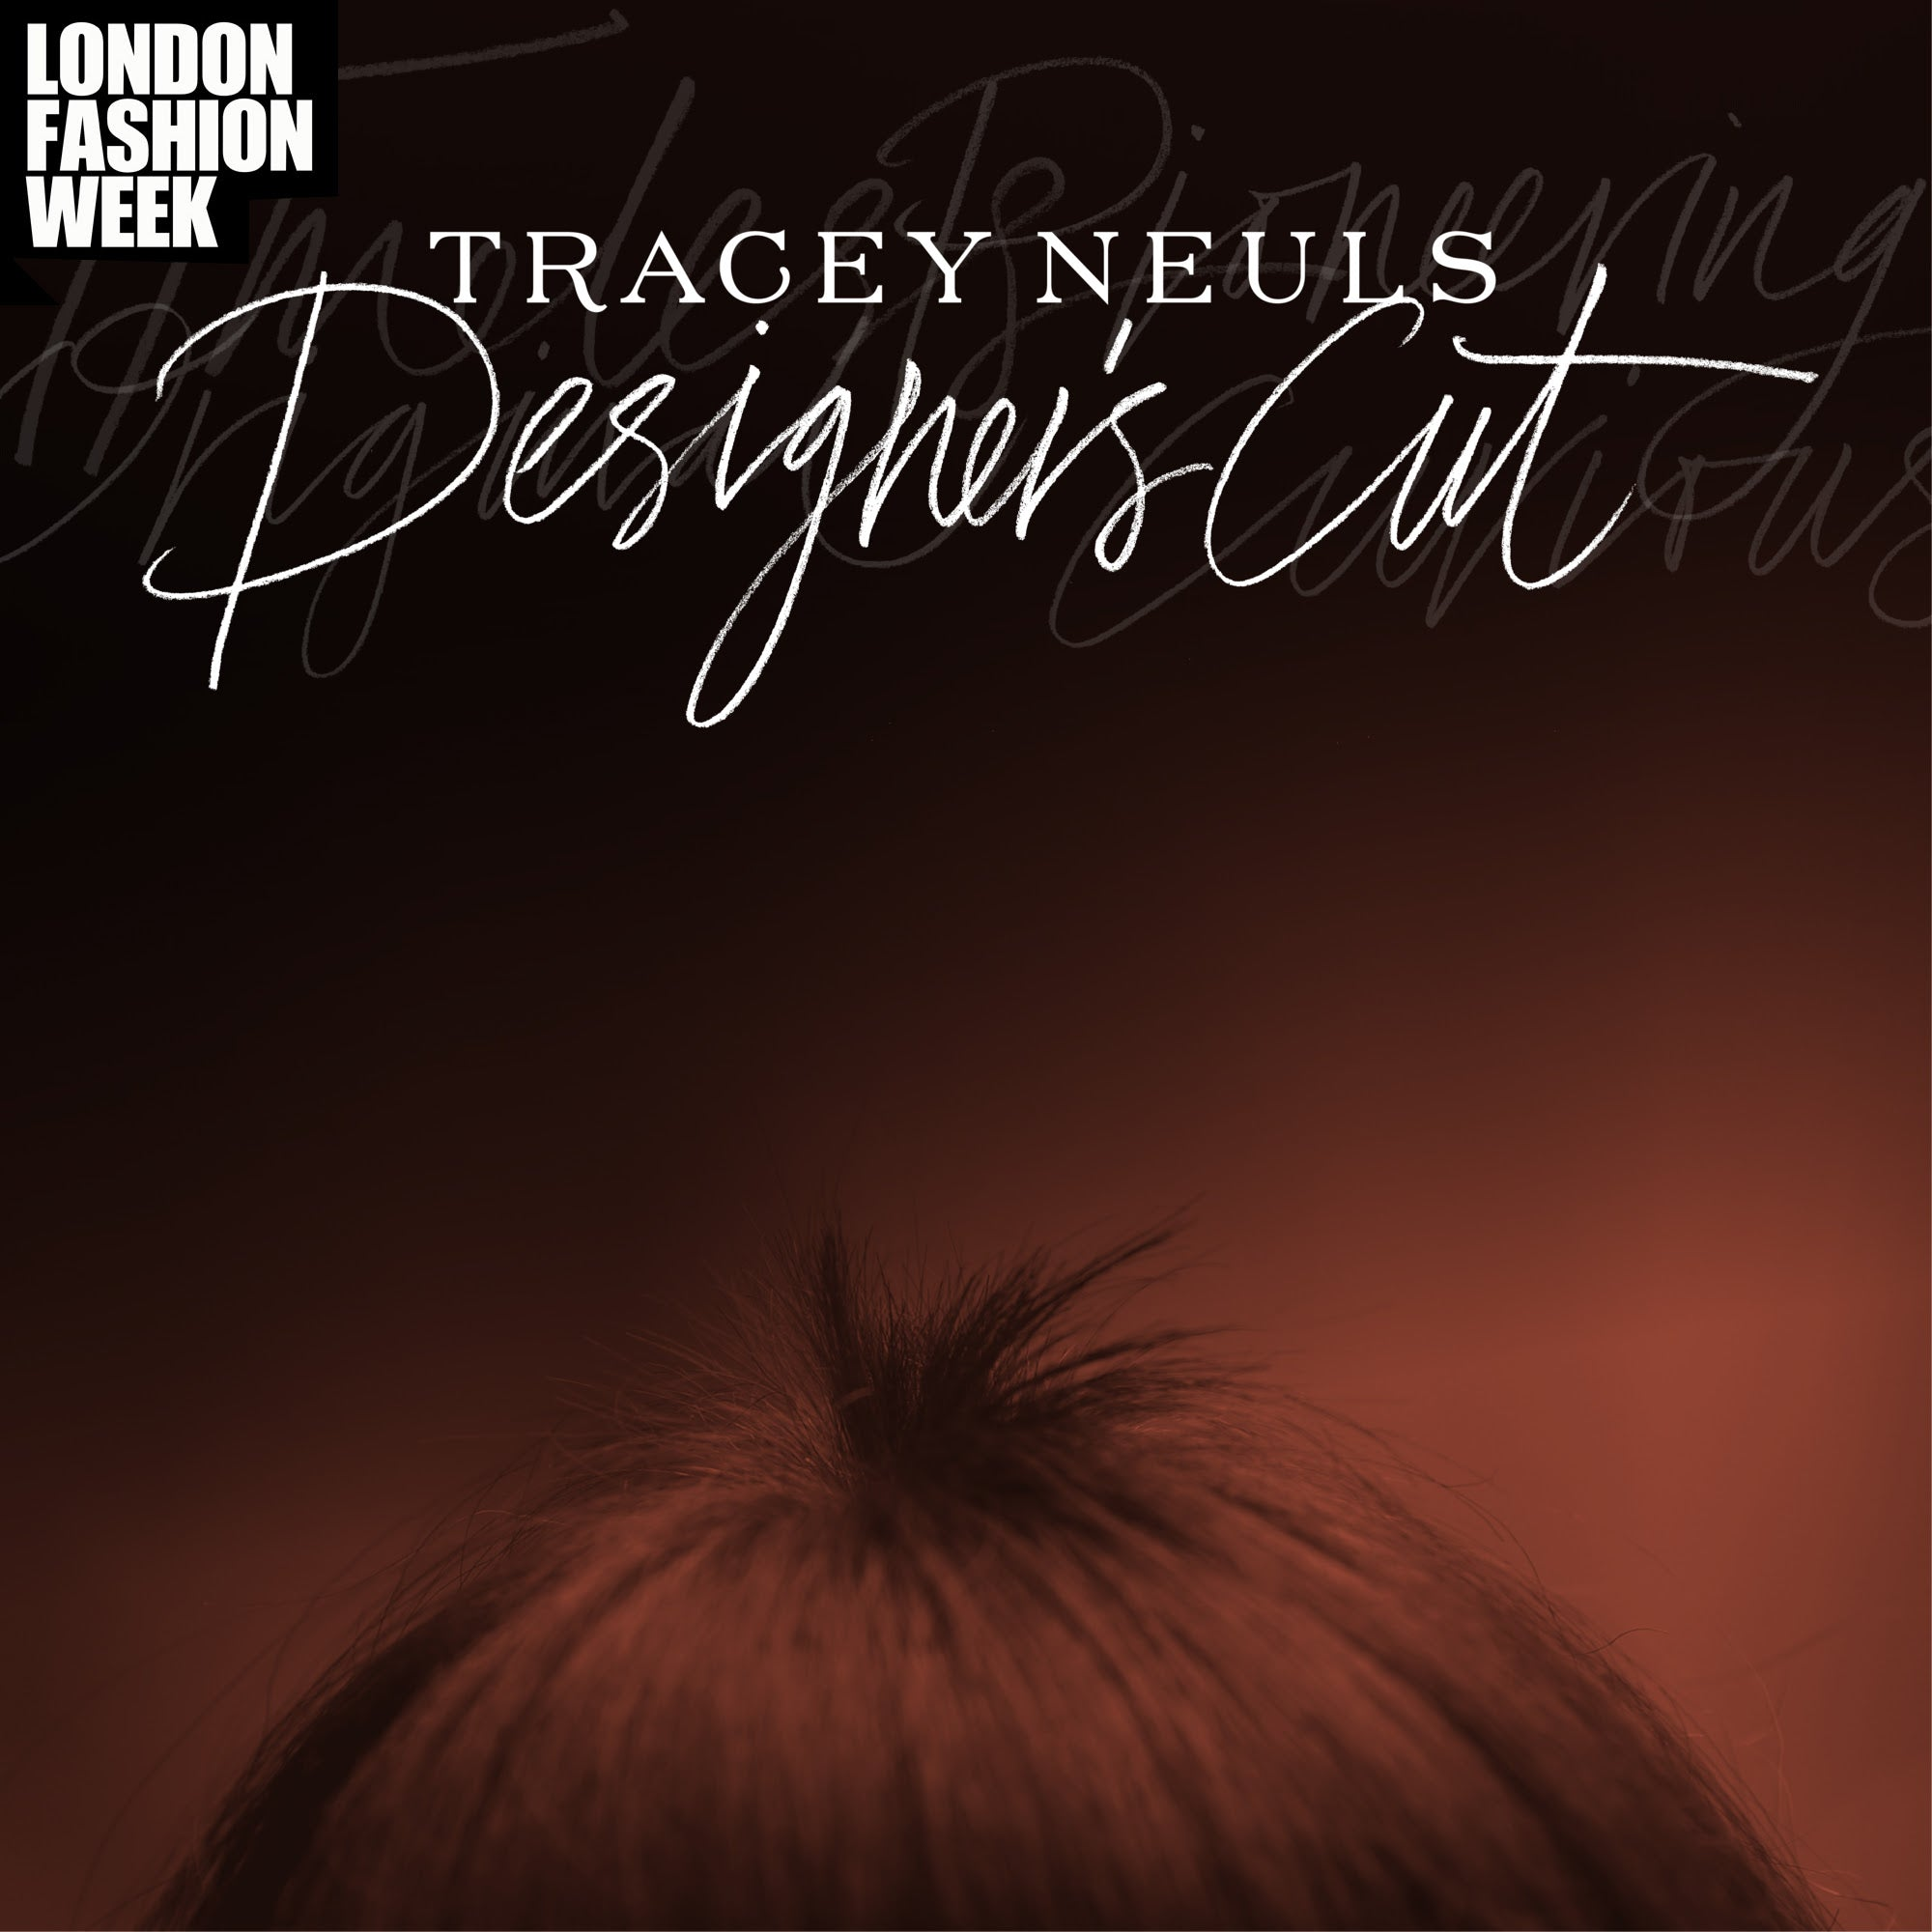 Tracey Neuls | Designer's Cut